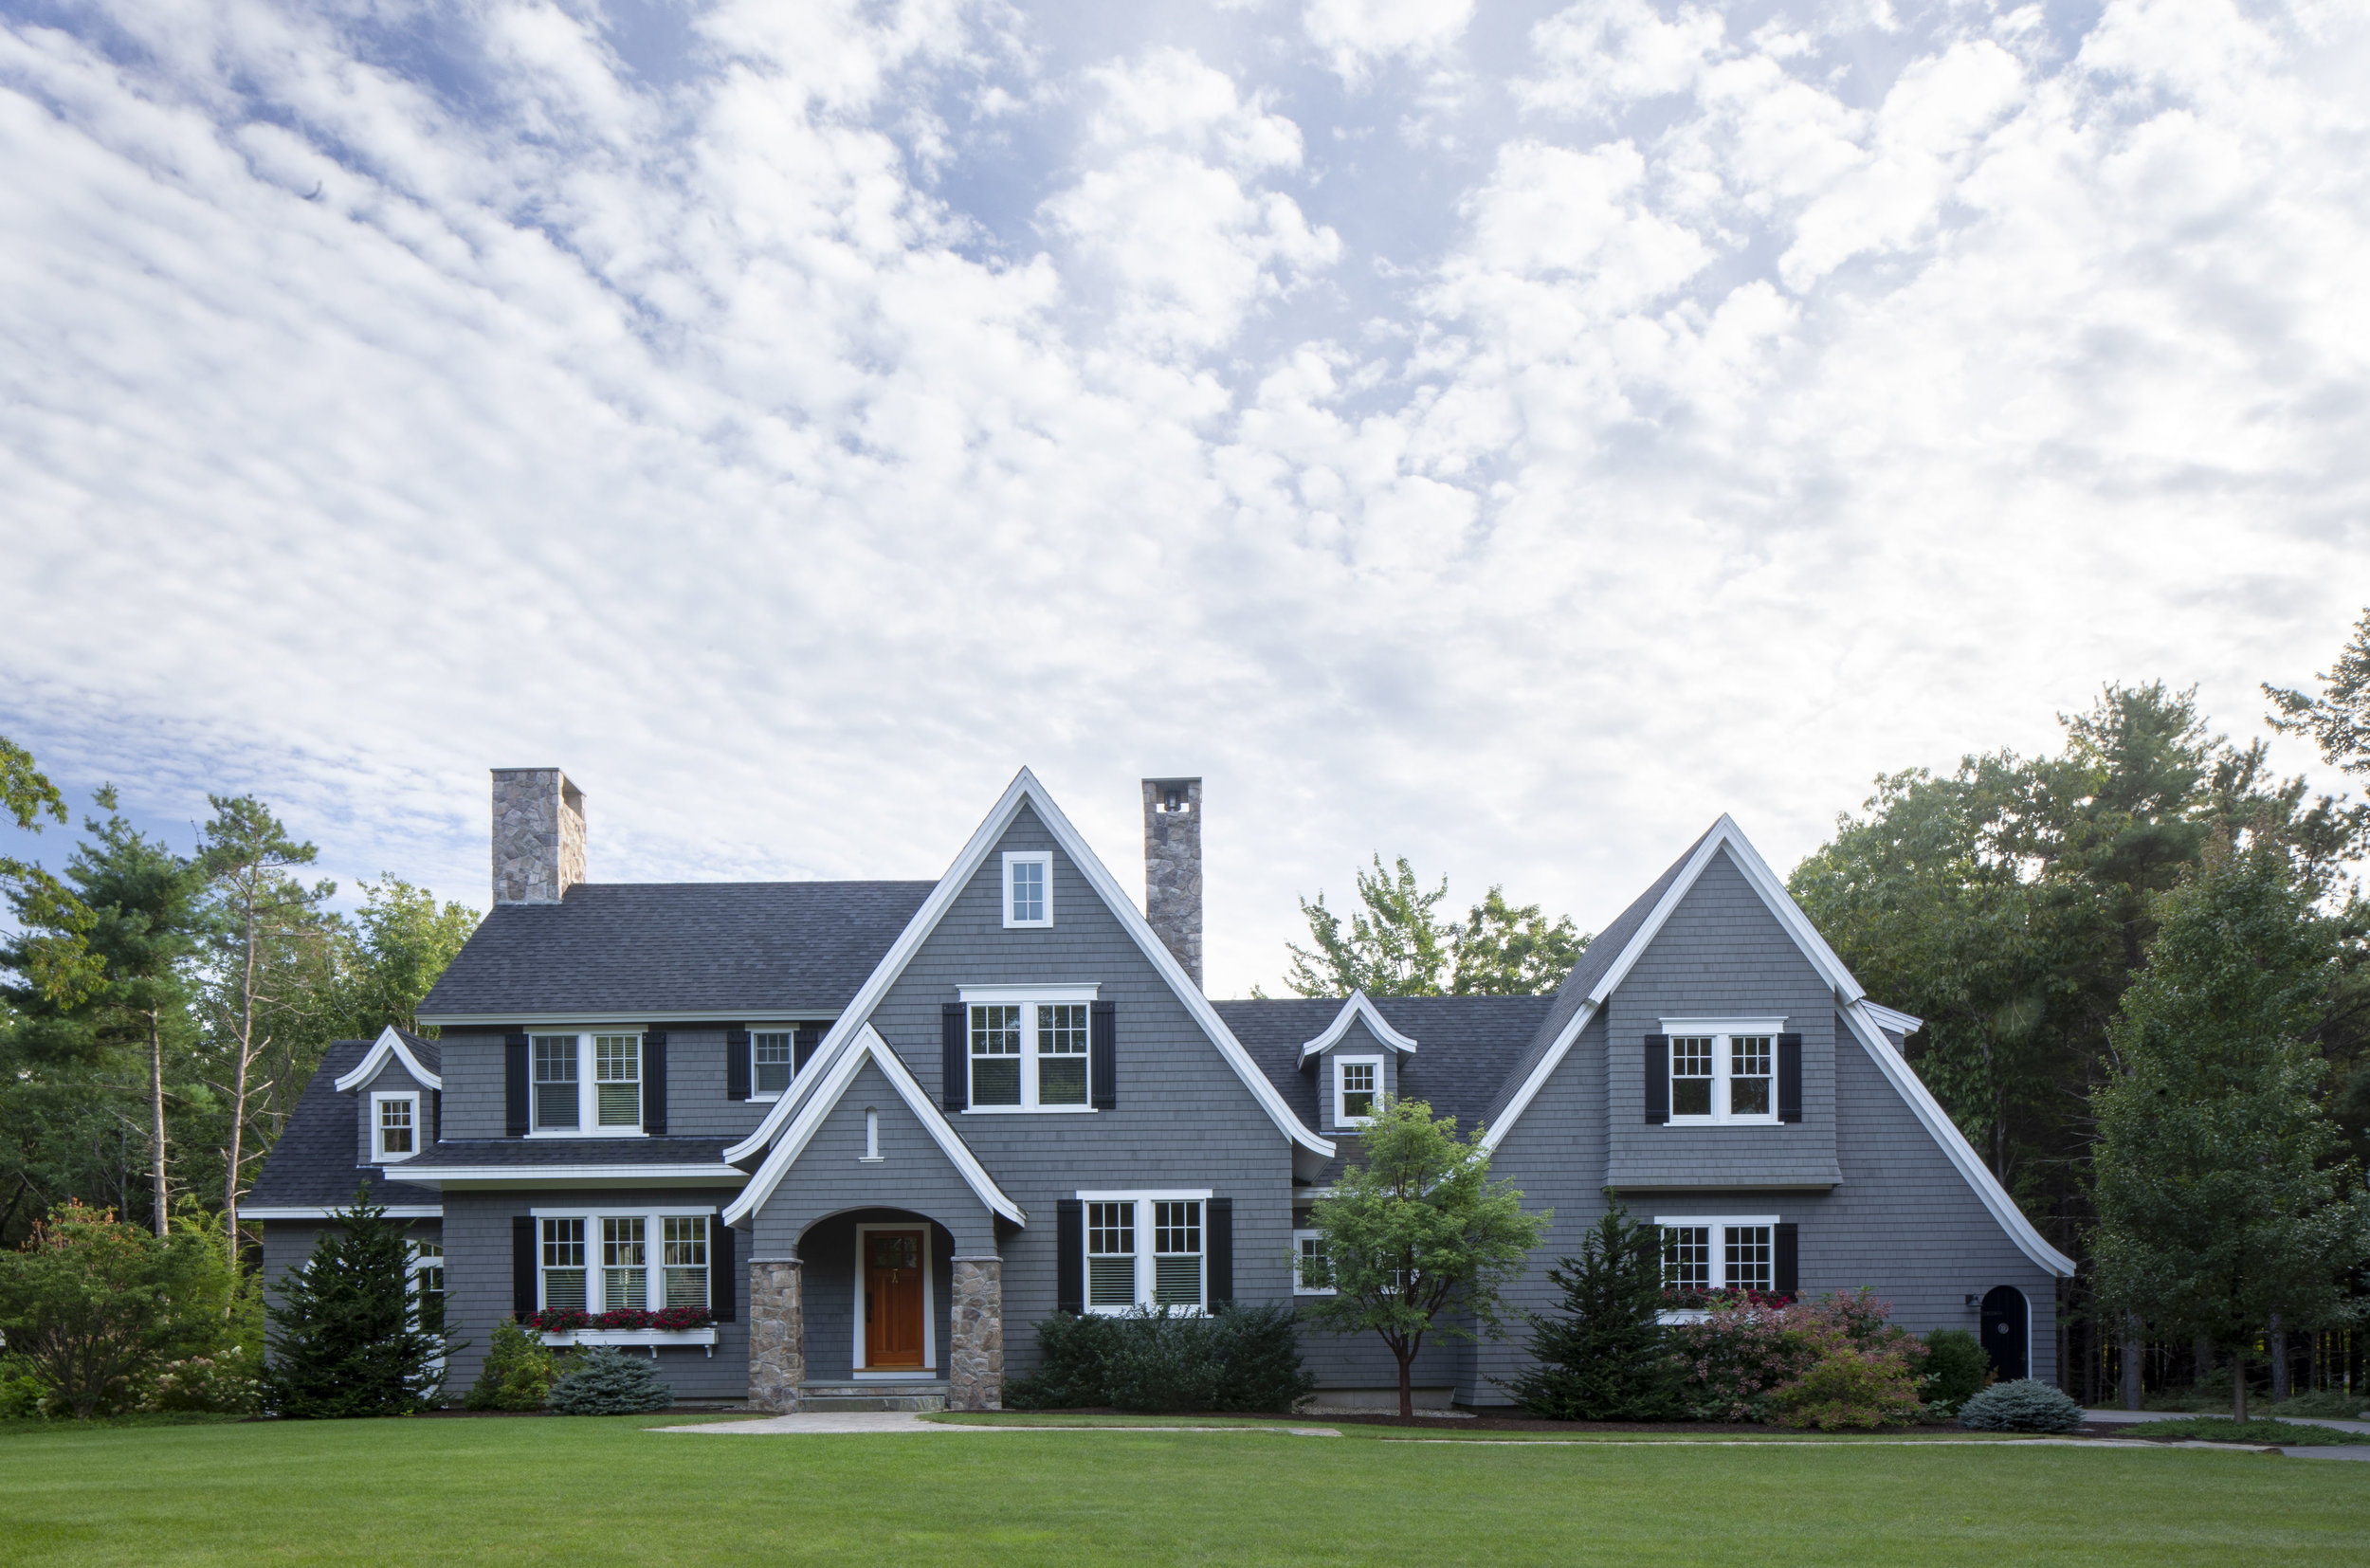 Custom Home Builder Thomas and Lord Kennebunkport Maine © Heidi Kirn Photography _Ext28_025.jpg